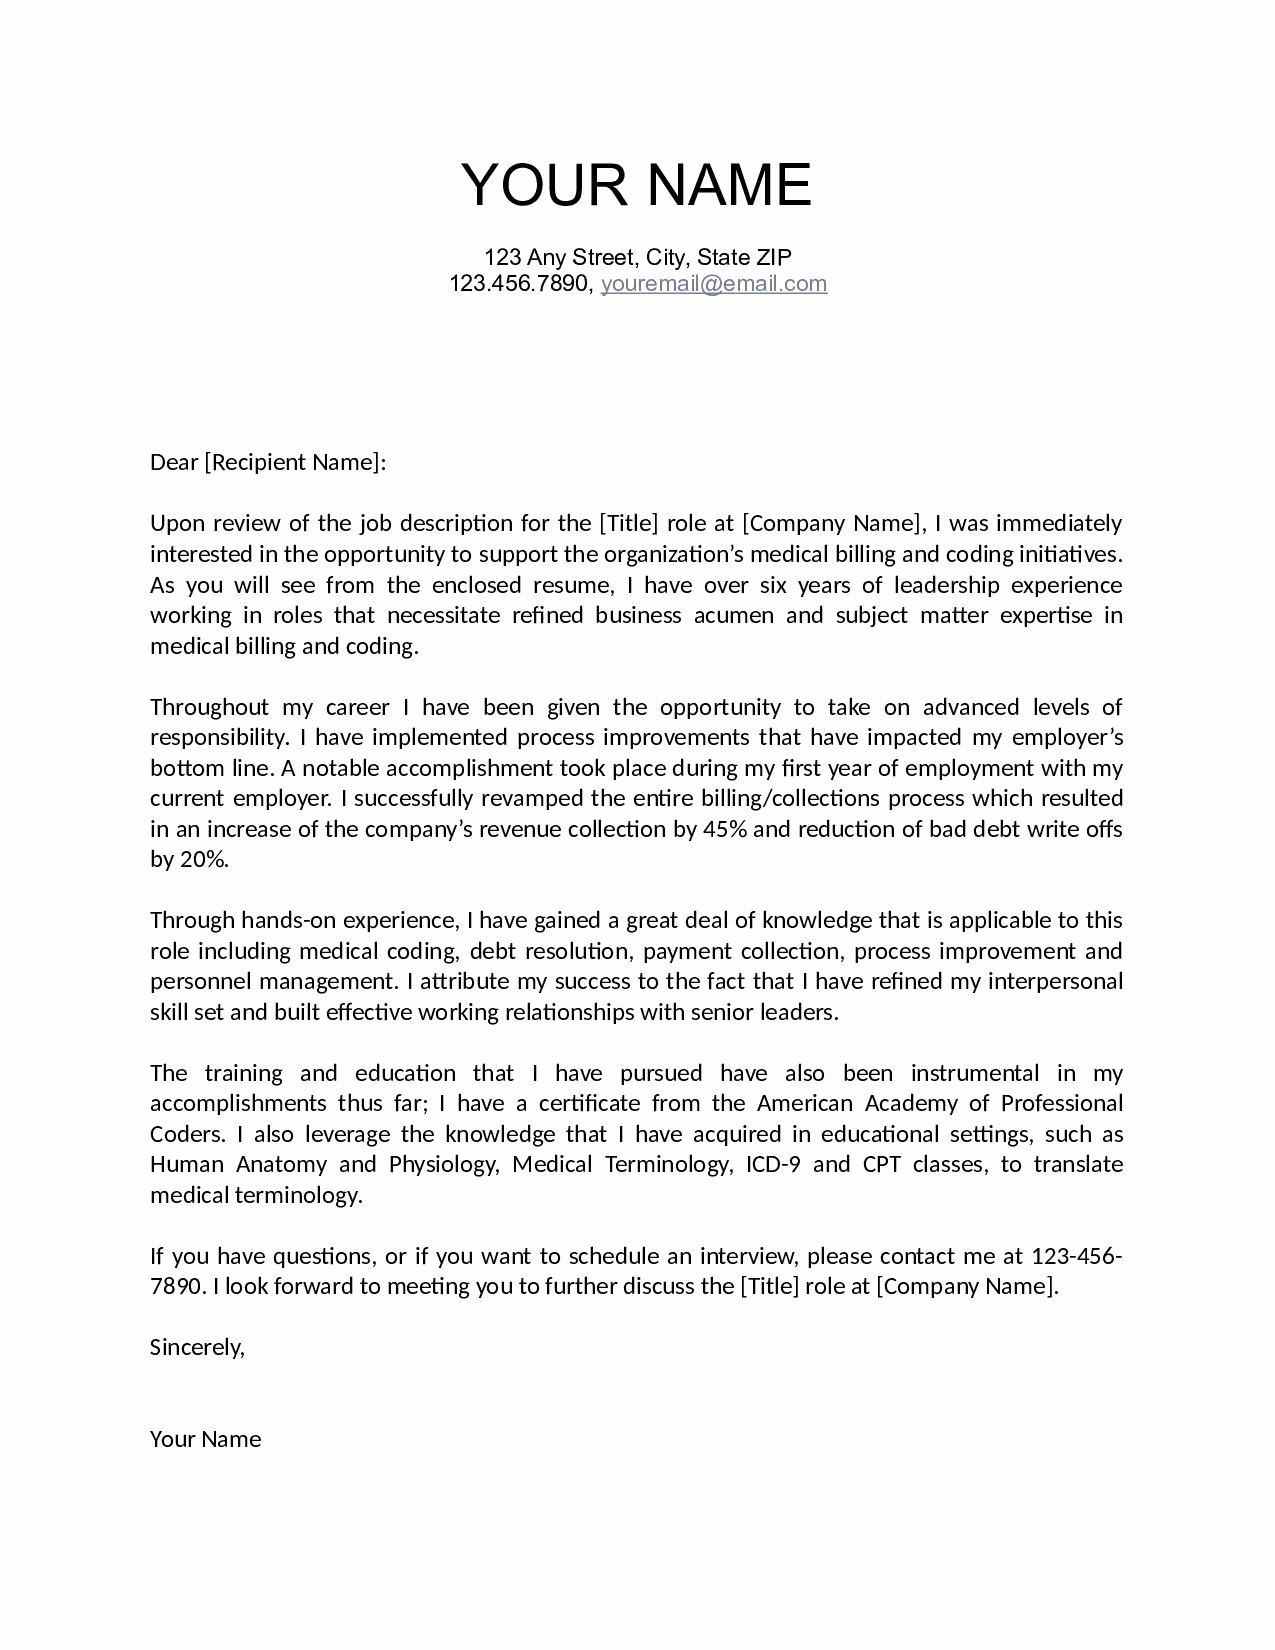 Debt Letter Template - Sample Email Cover Letter for Internship Awesome What to Include In